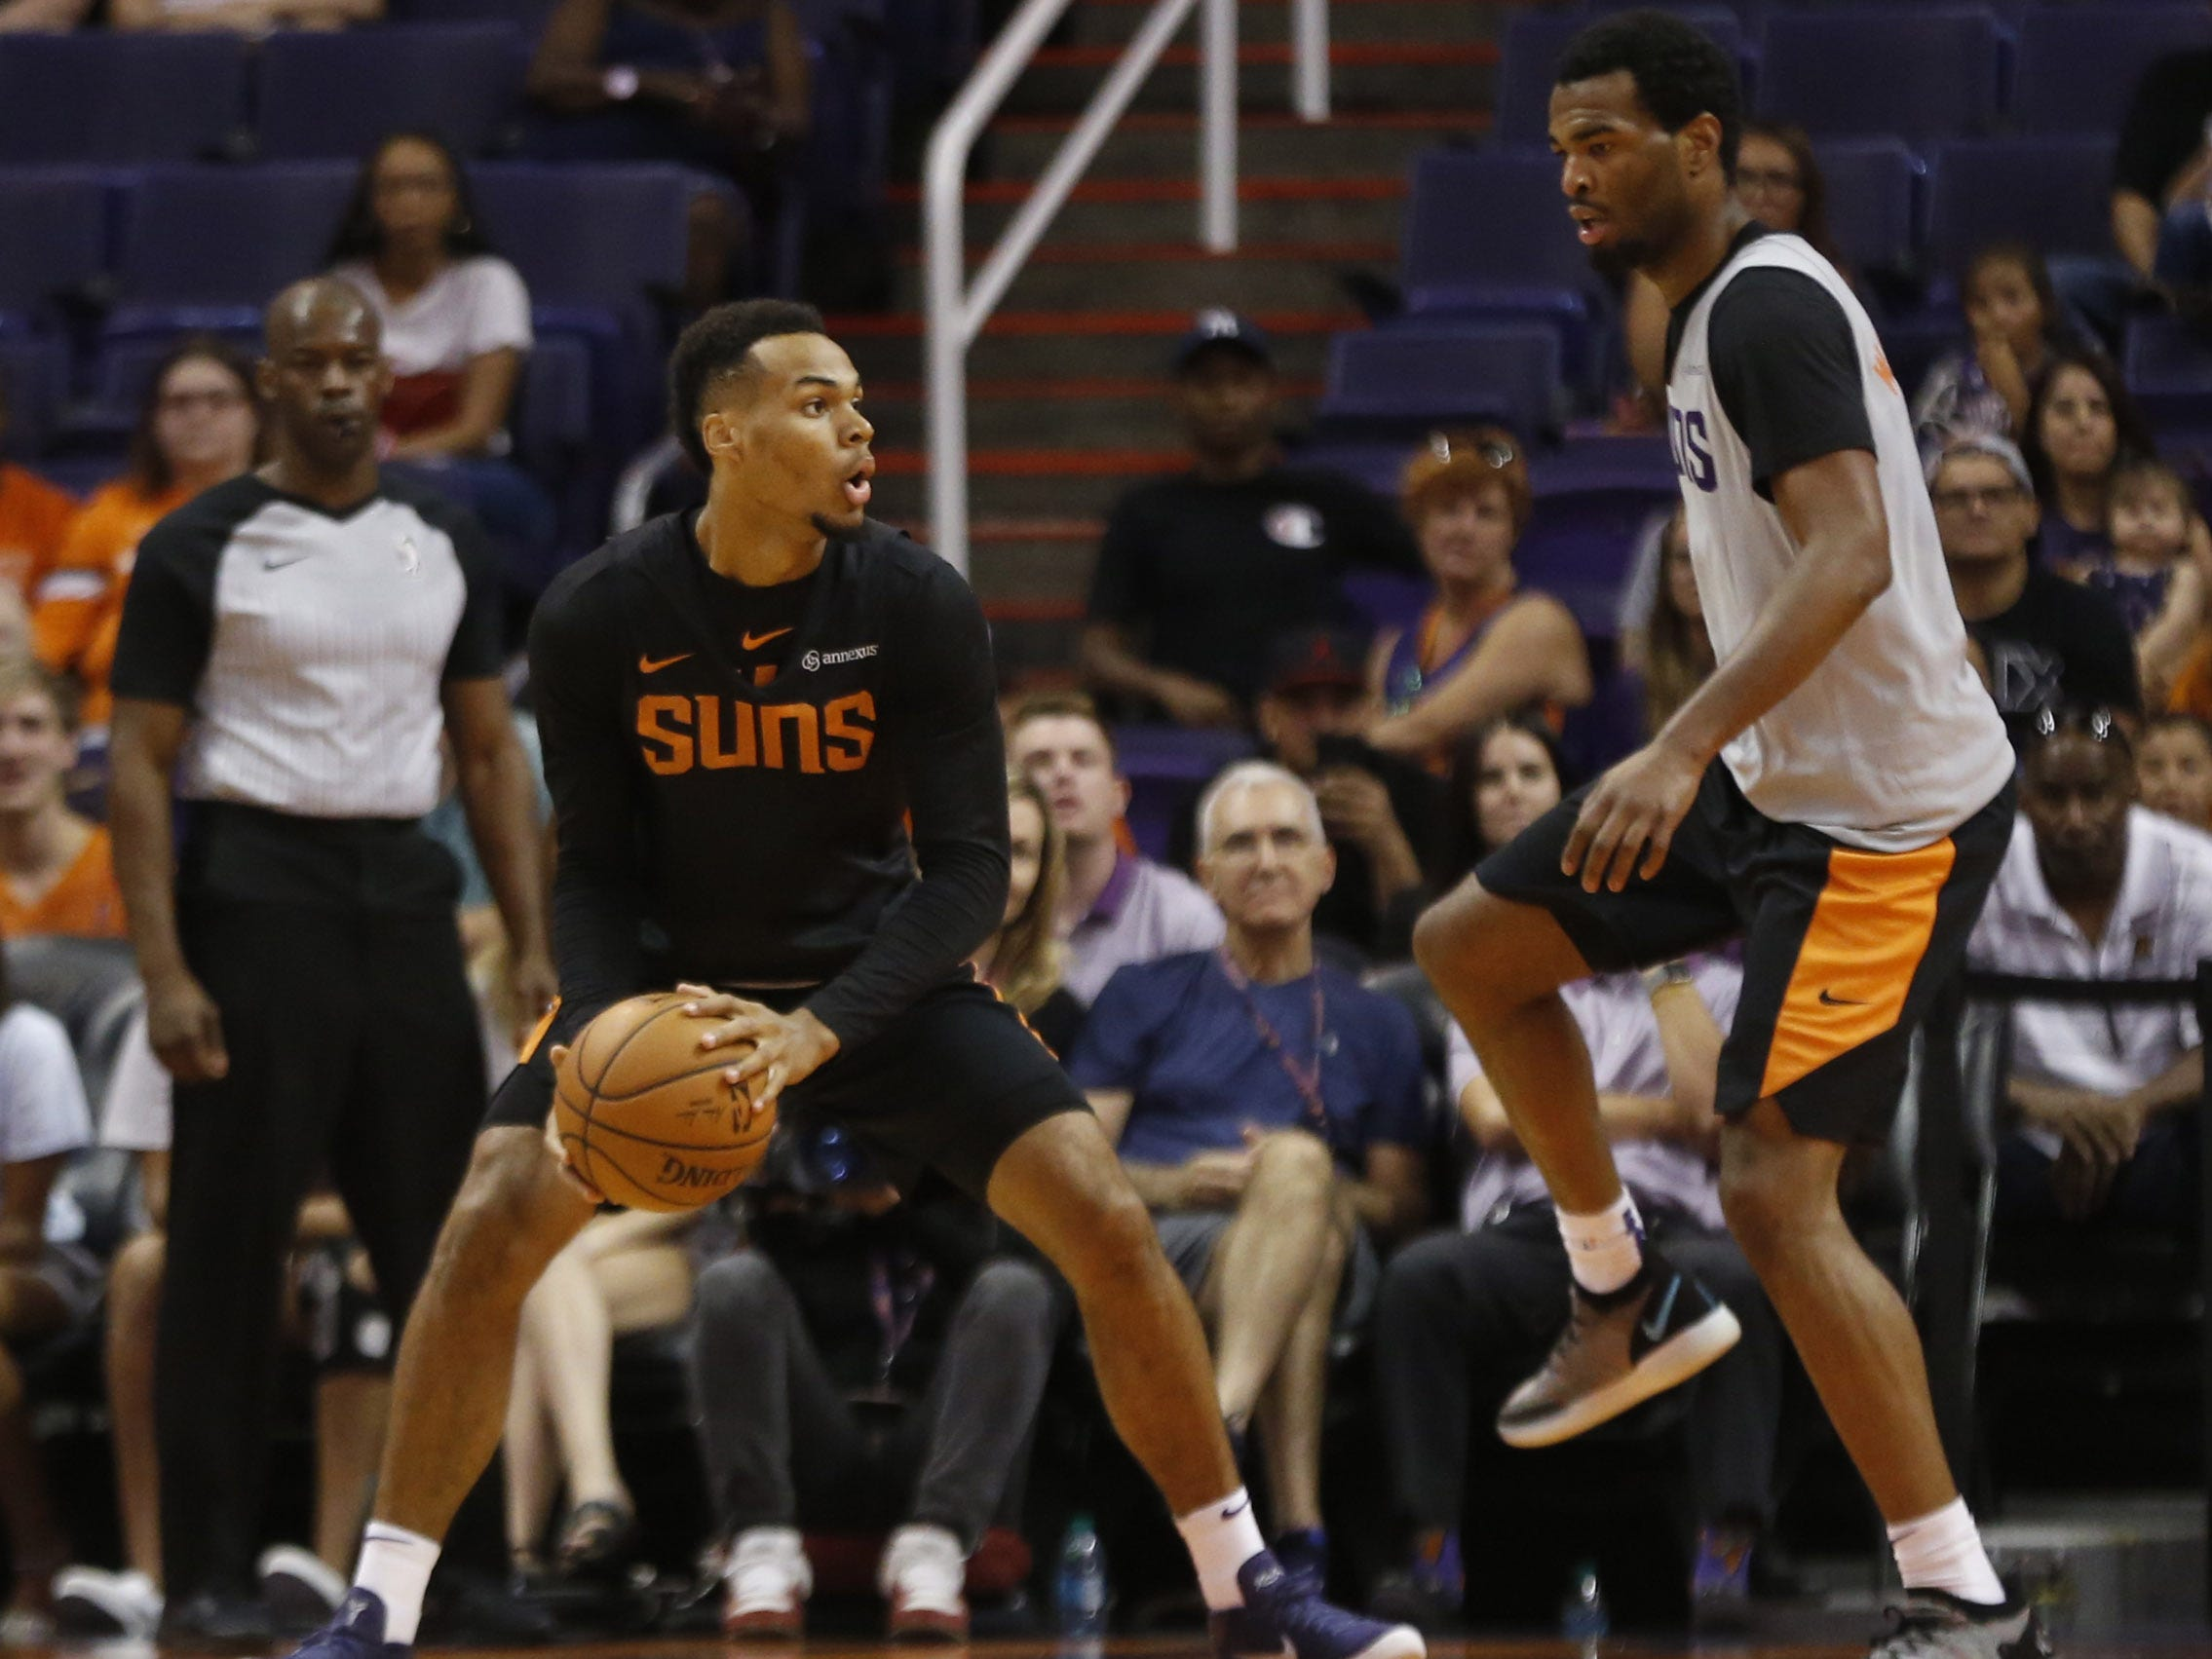 Suns Ellie Okobo looks for a teammate as TJ Warren defends him during an Open Practice at Talking Stick Resort Arena in Phoenix, Ariz. on Sept. 29, 2018.